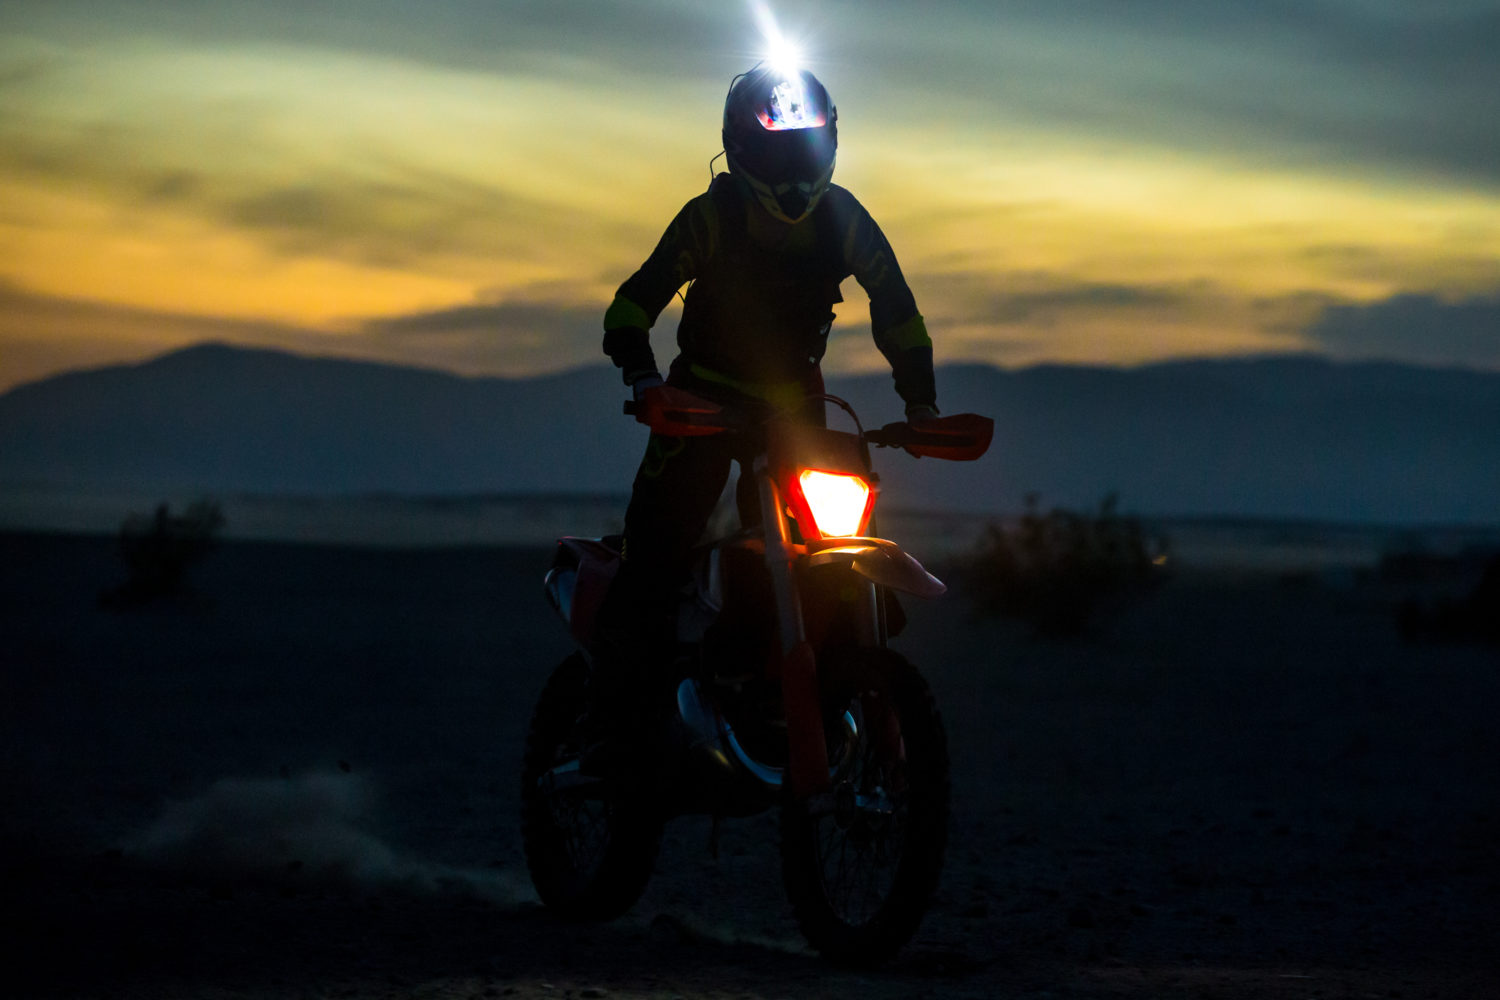 Task racing check out our task racing helmet lights and light bars in action publicscrutiny Choice Image